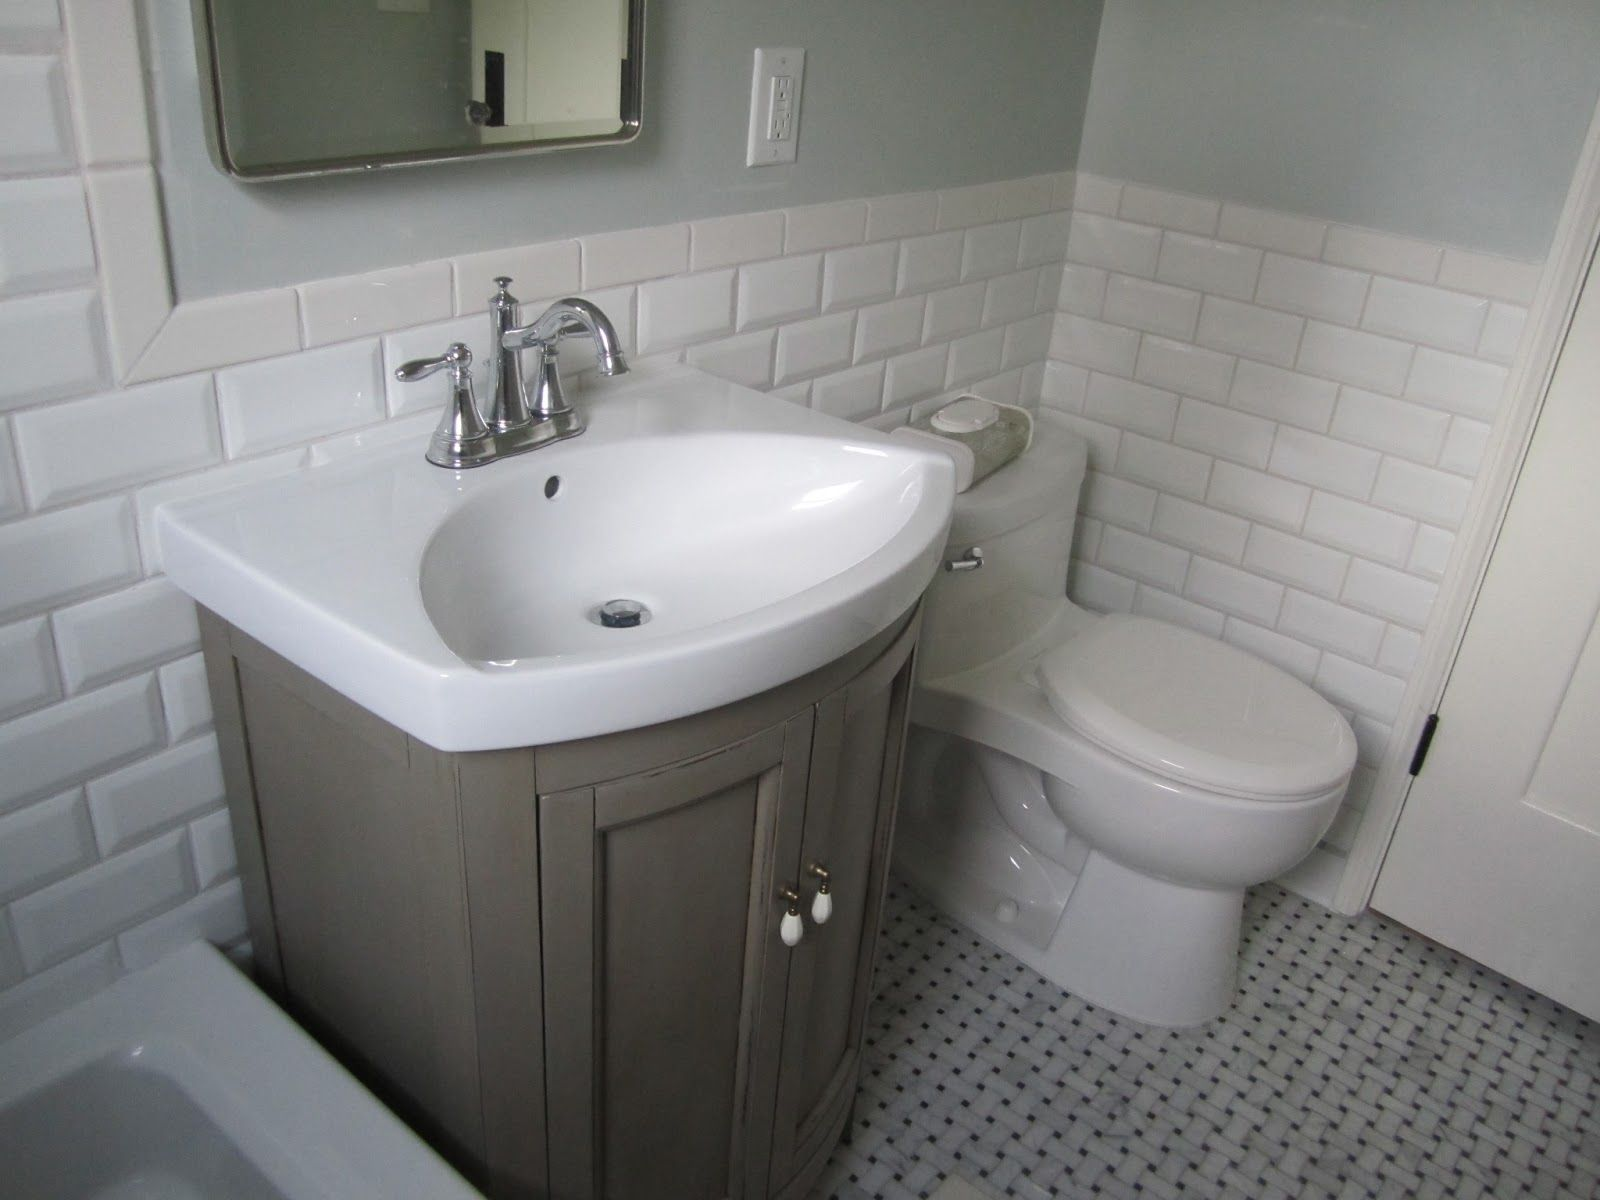 Bathroom Designs Using Subway Tile classy white subway ceramic bath wall tiled and gray single sink